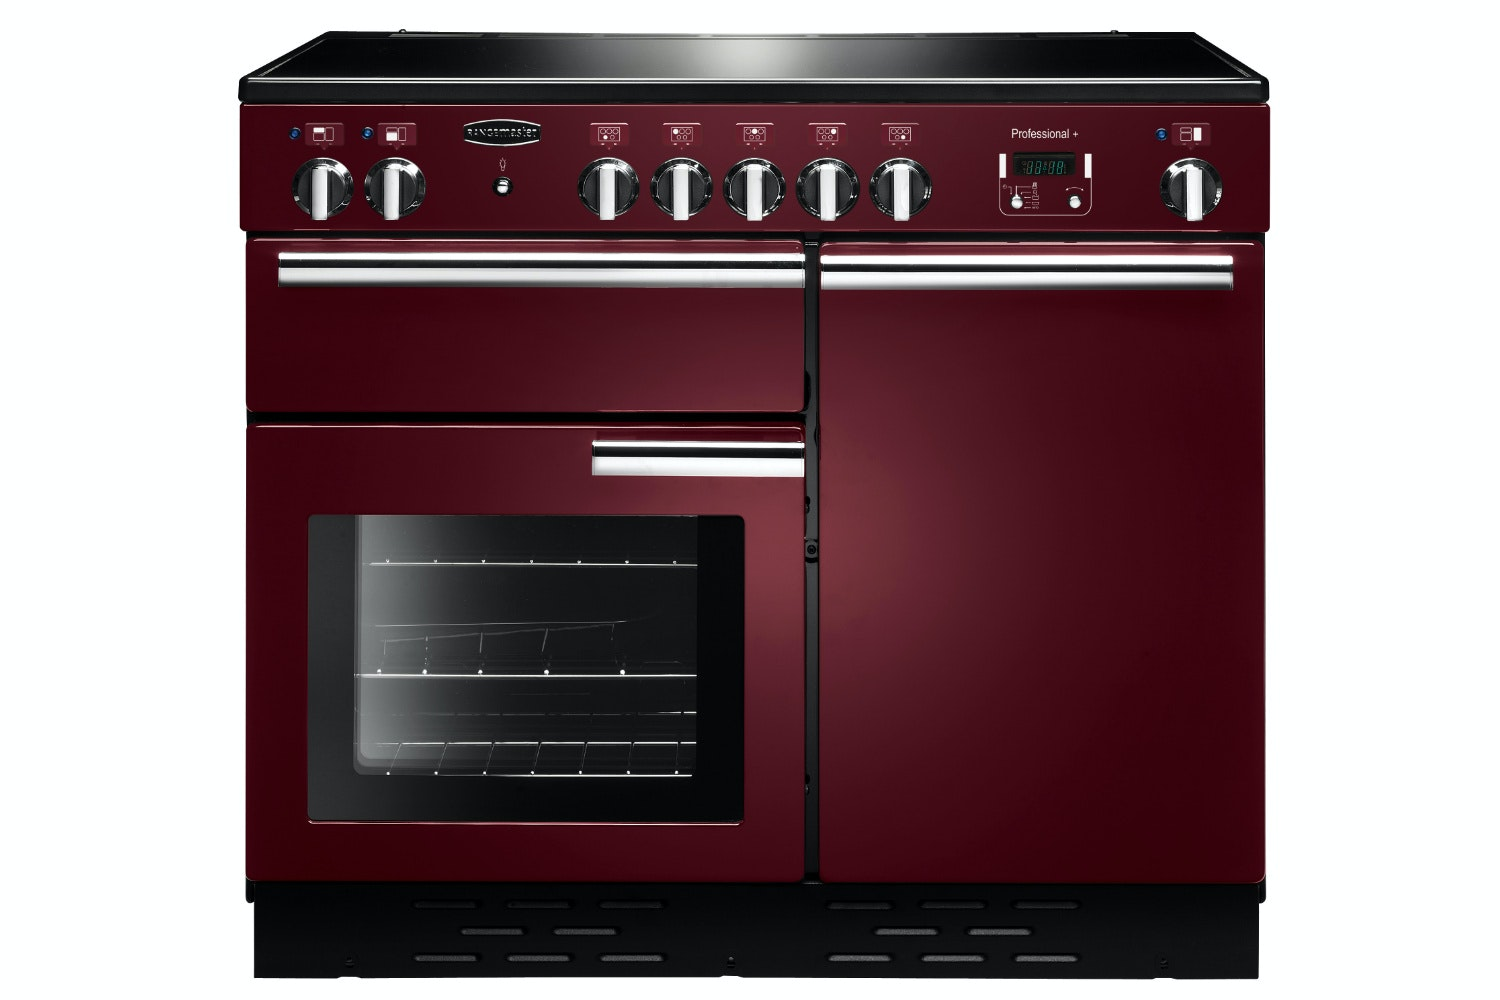 Rangemaster Pro Plus 100cm Electric Range Cooker | PROP100EICY/C | Cranberry